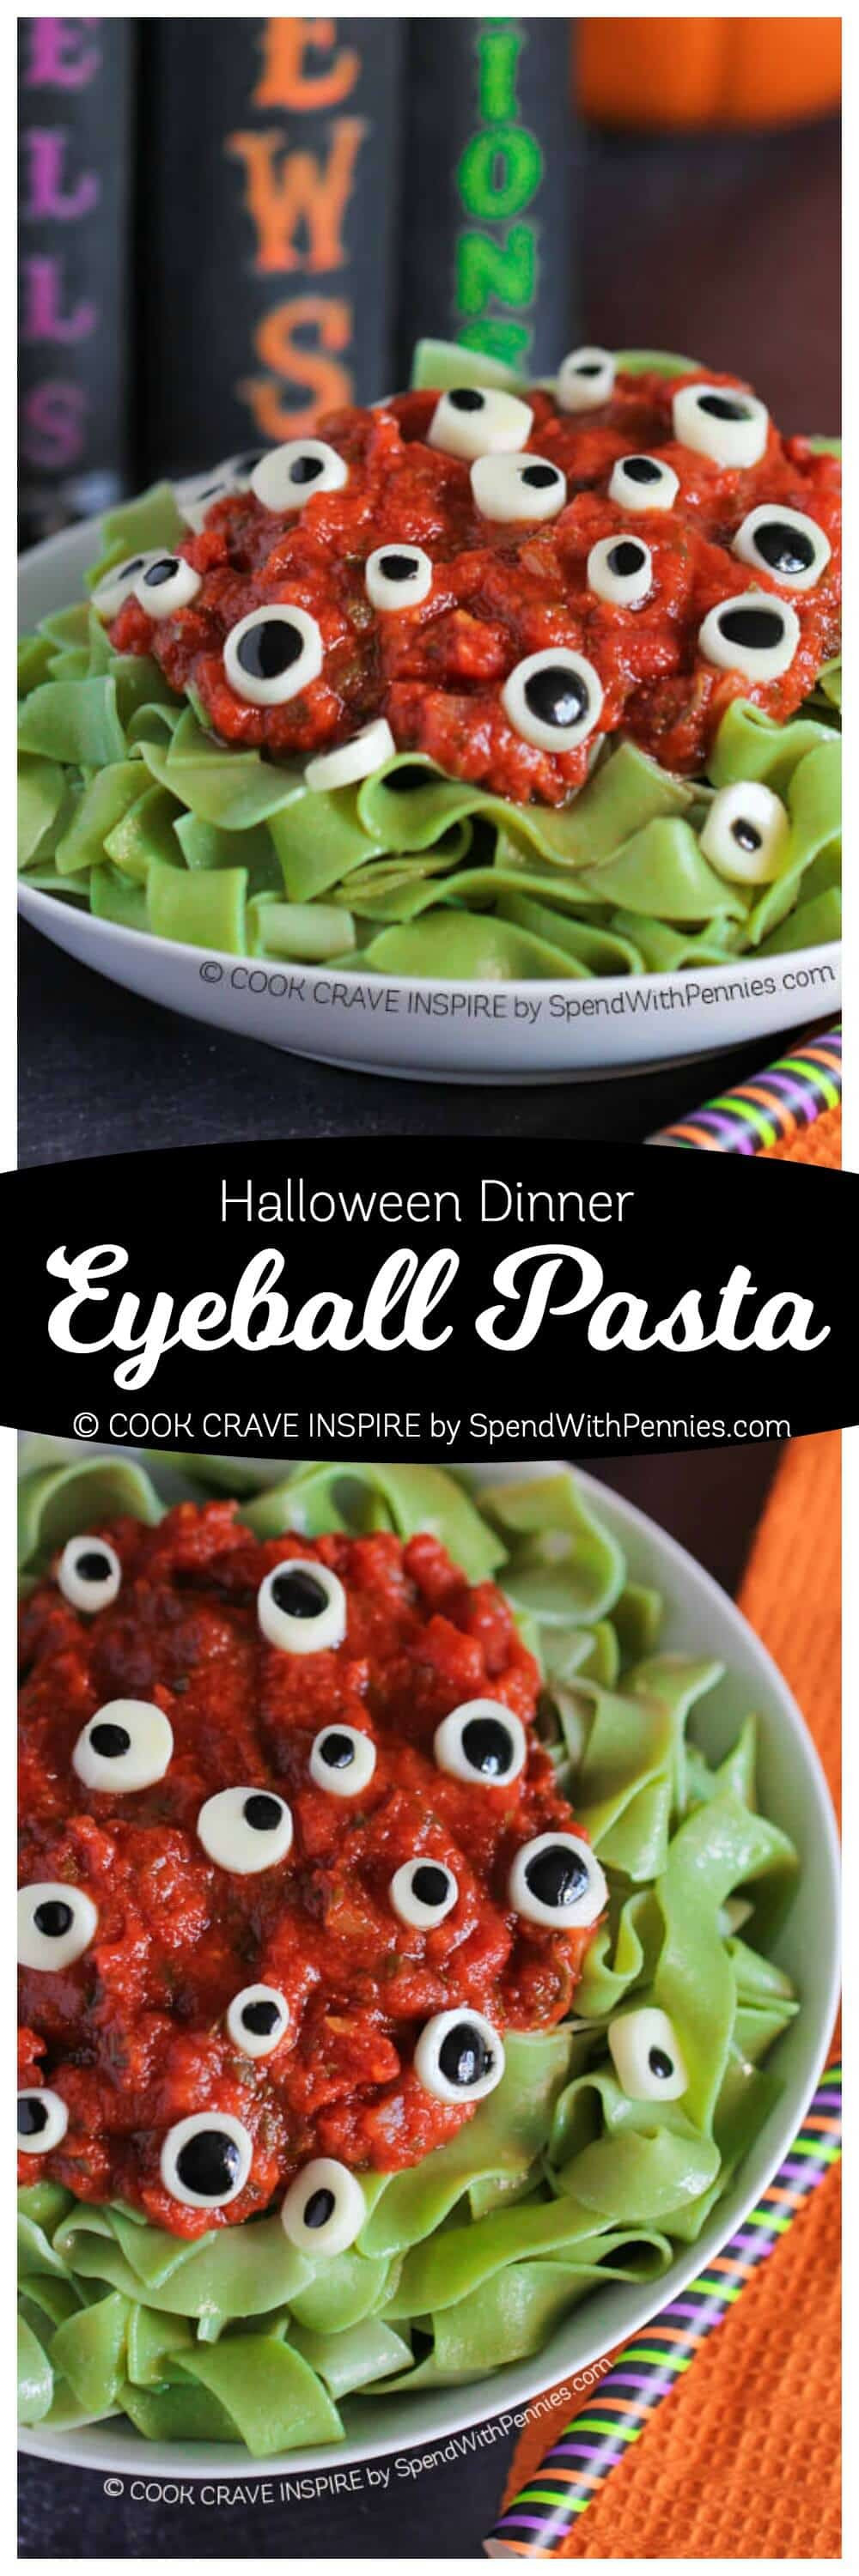 Easy Halloween Dinners  Eyeball Pasta Halloween Dinner Idea Spend With Pennies